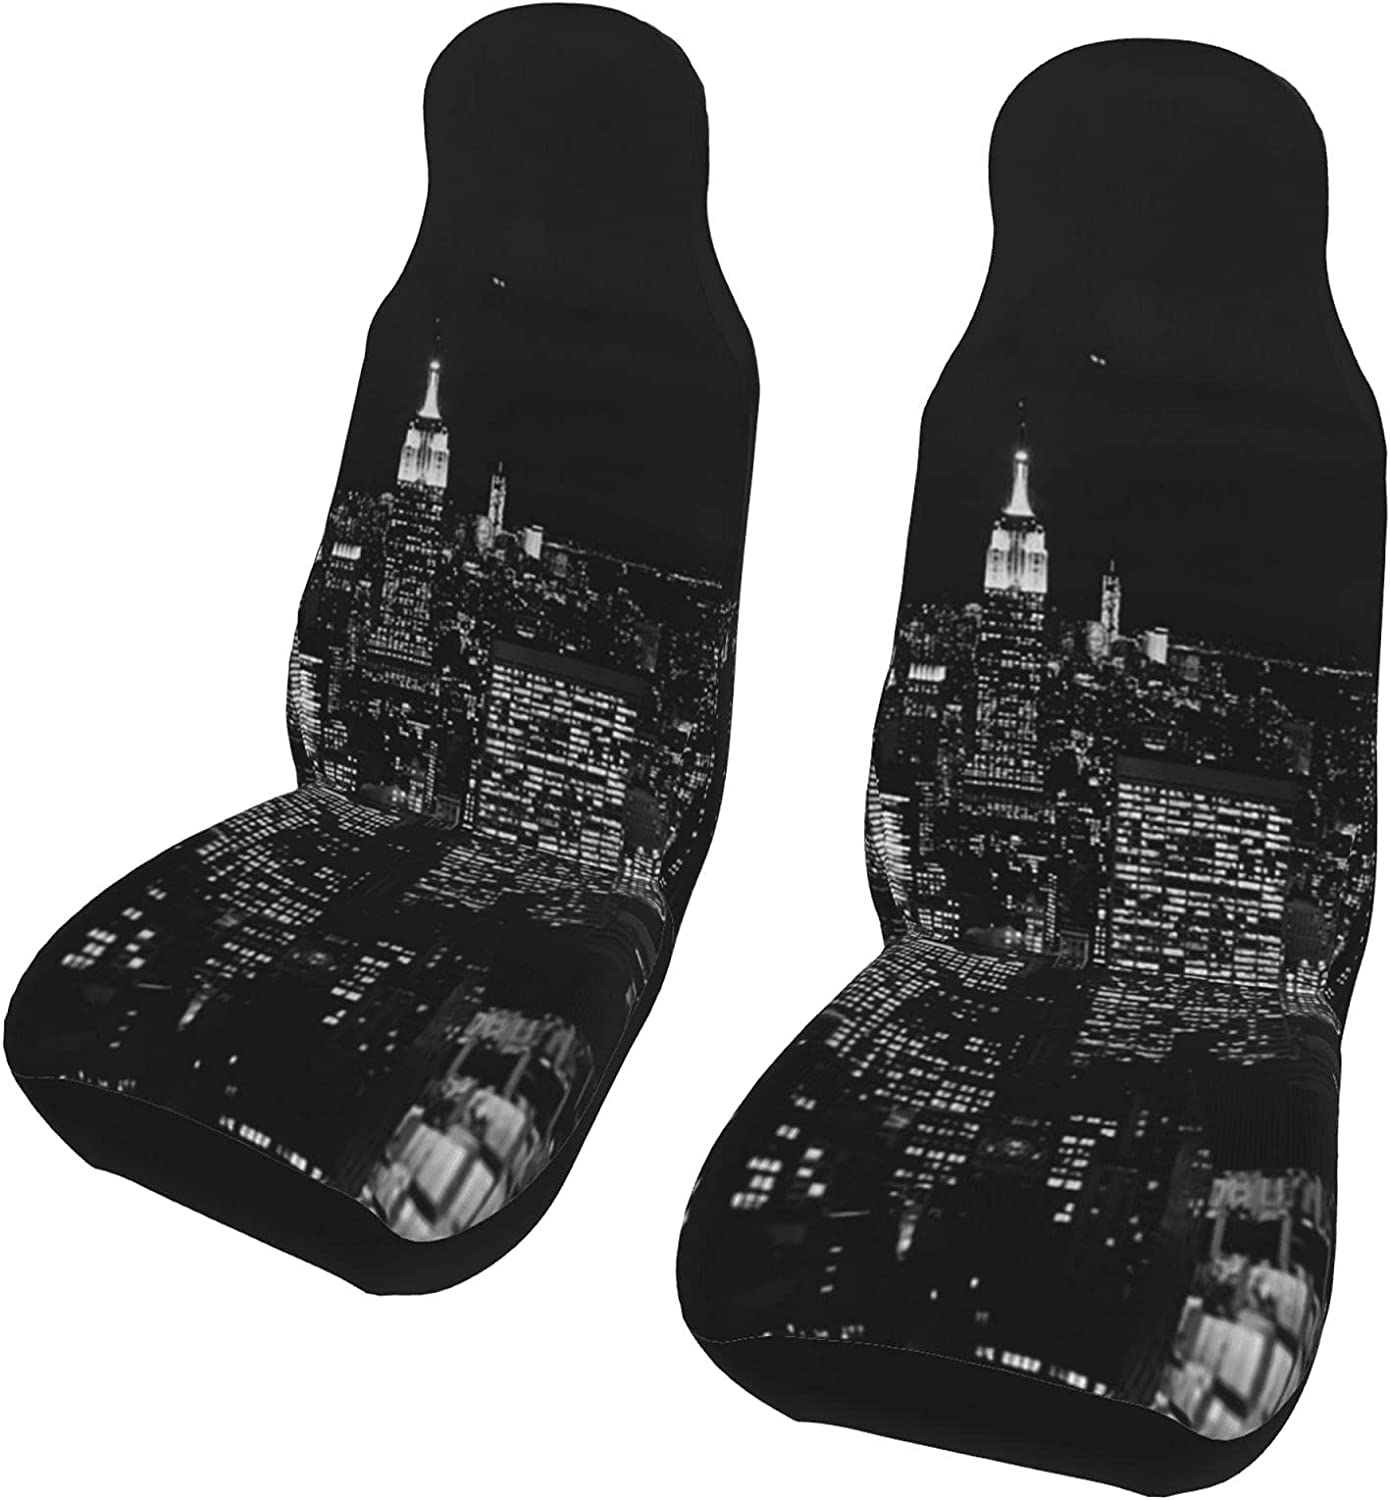 Qusnion Car Seat Covers Front 2 Cover City Seats Max 49% OFF Night Bargain sale